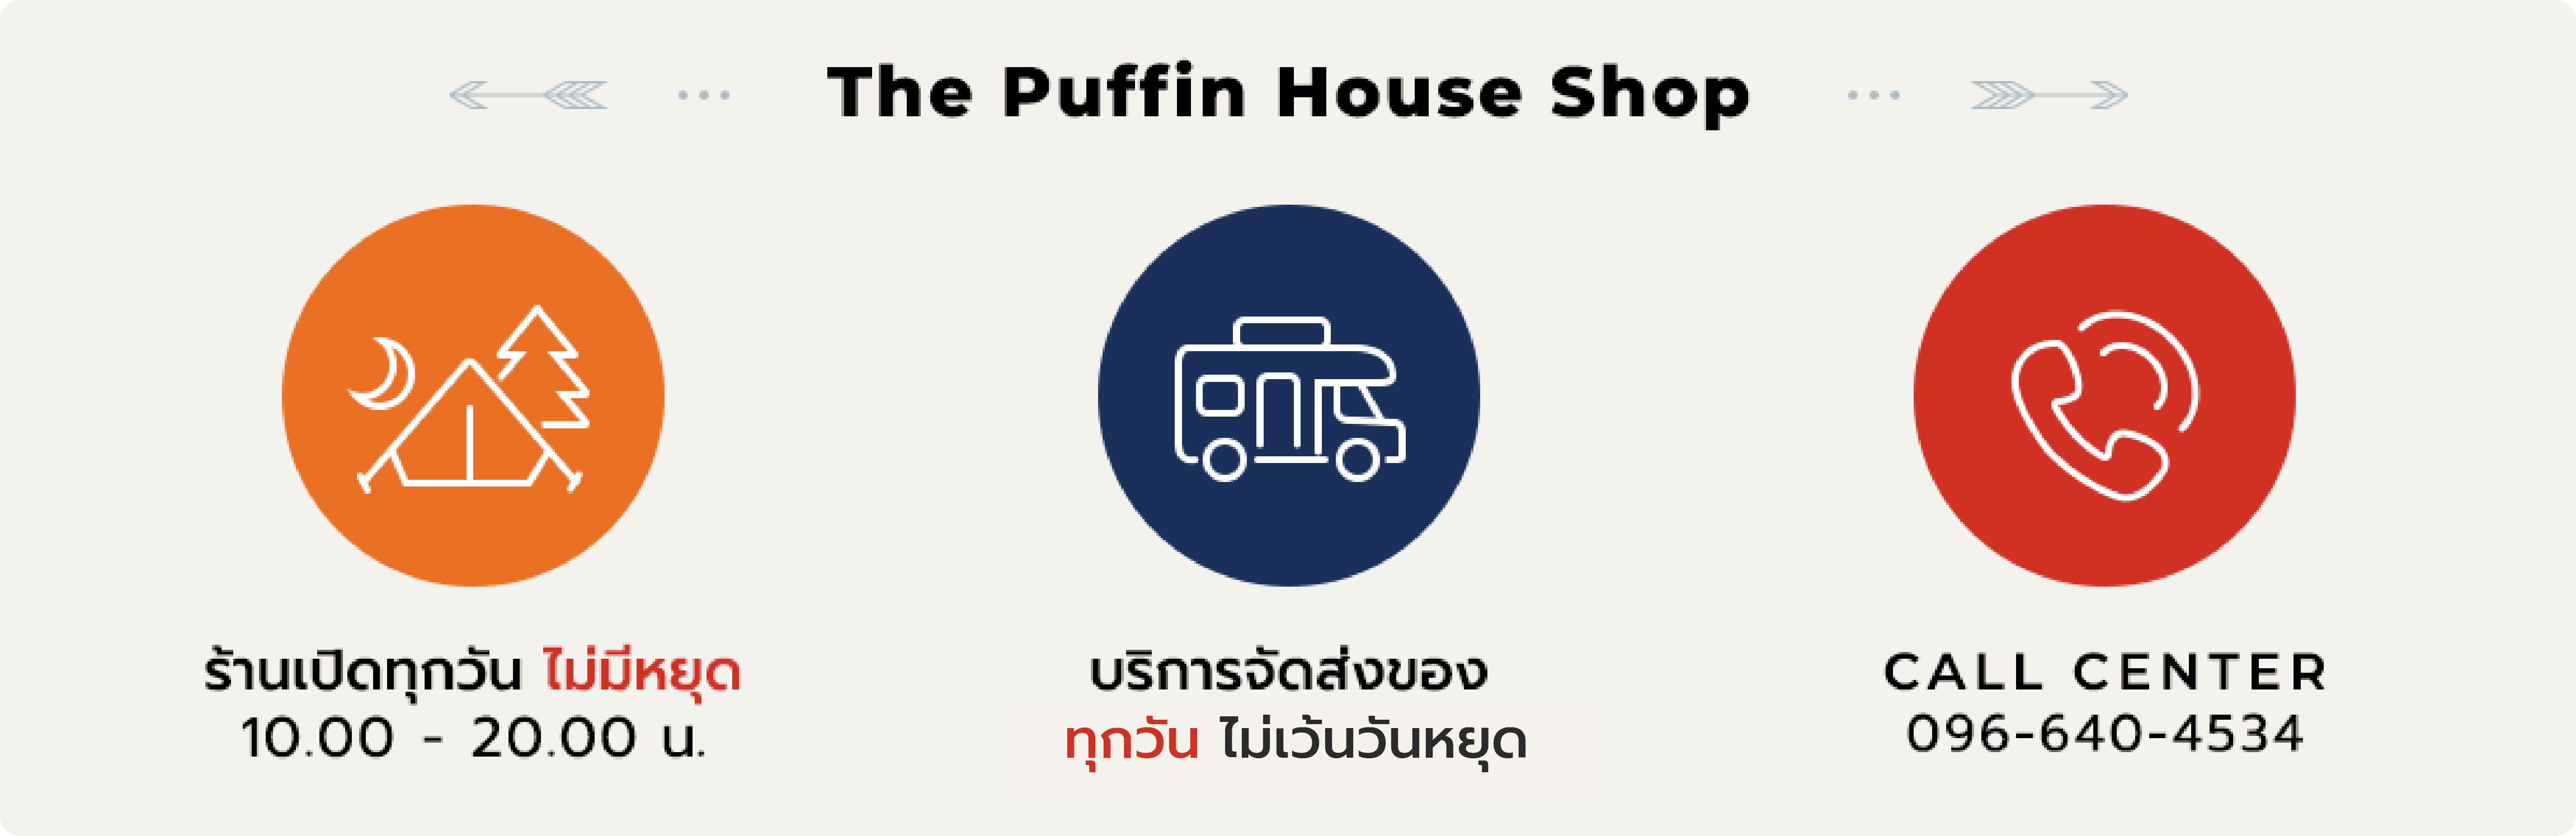 The Puffin House - Express